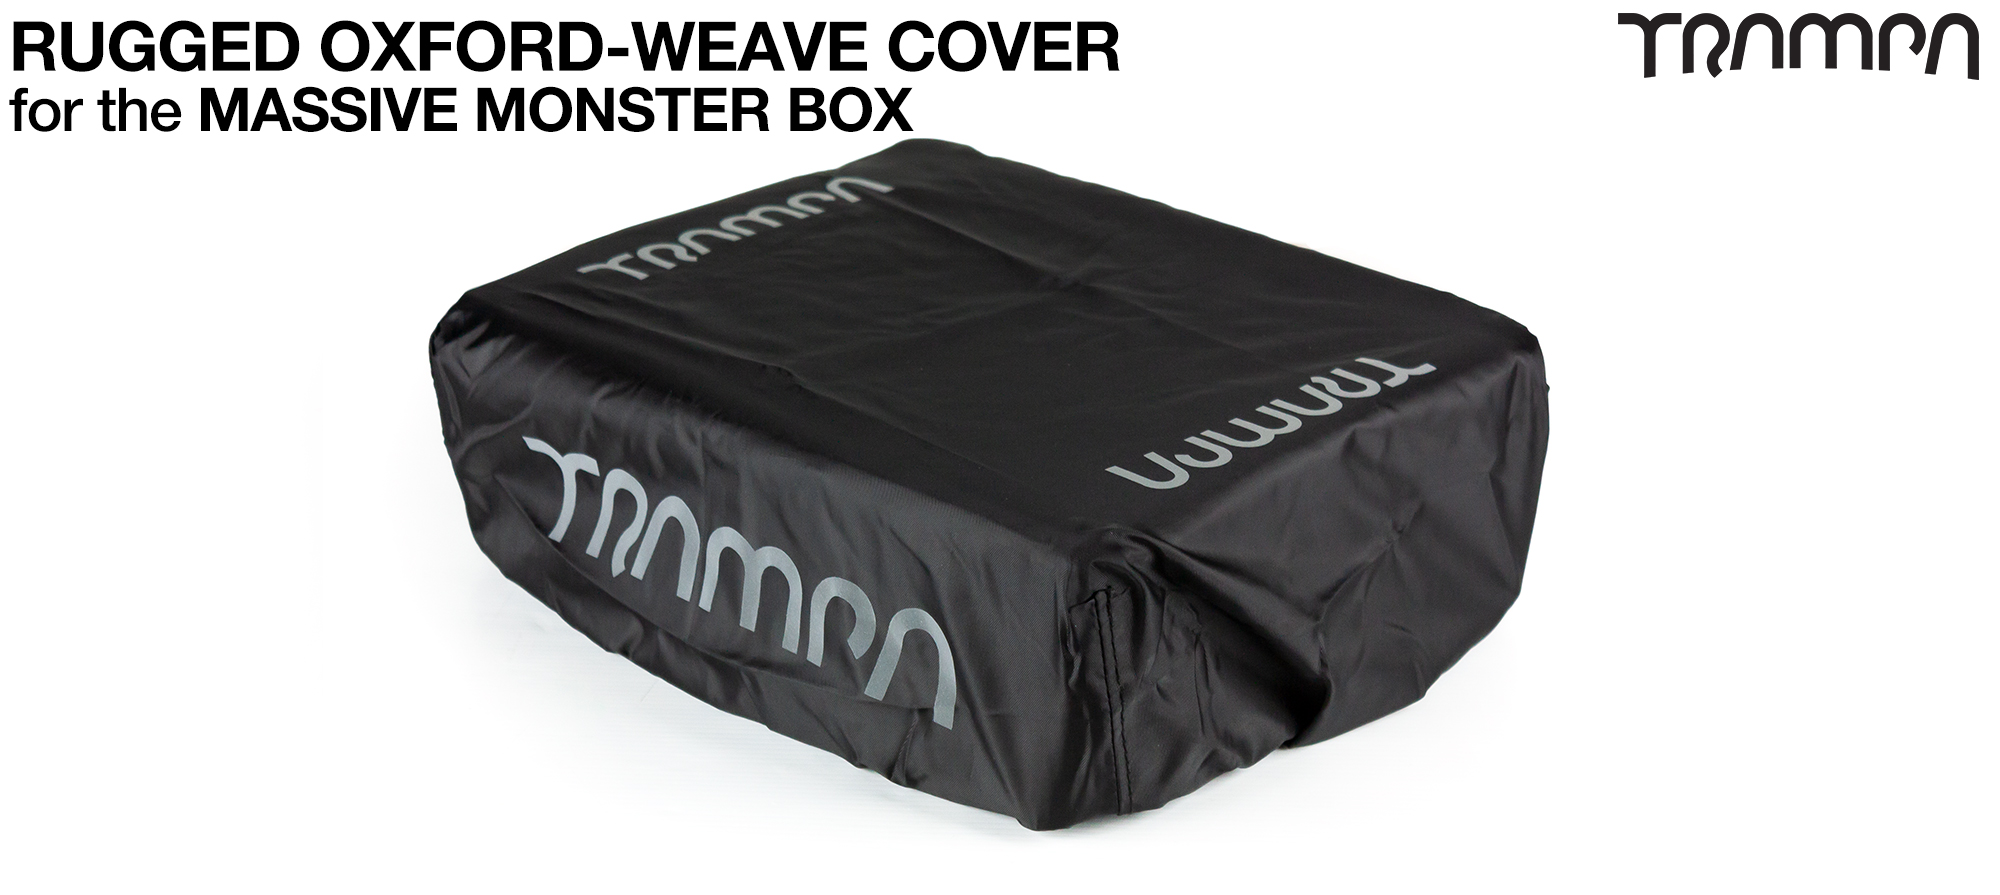 Please add a Oxford Weave (RUGGED) MASSIVE Monster Box Cover(+£15)